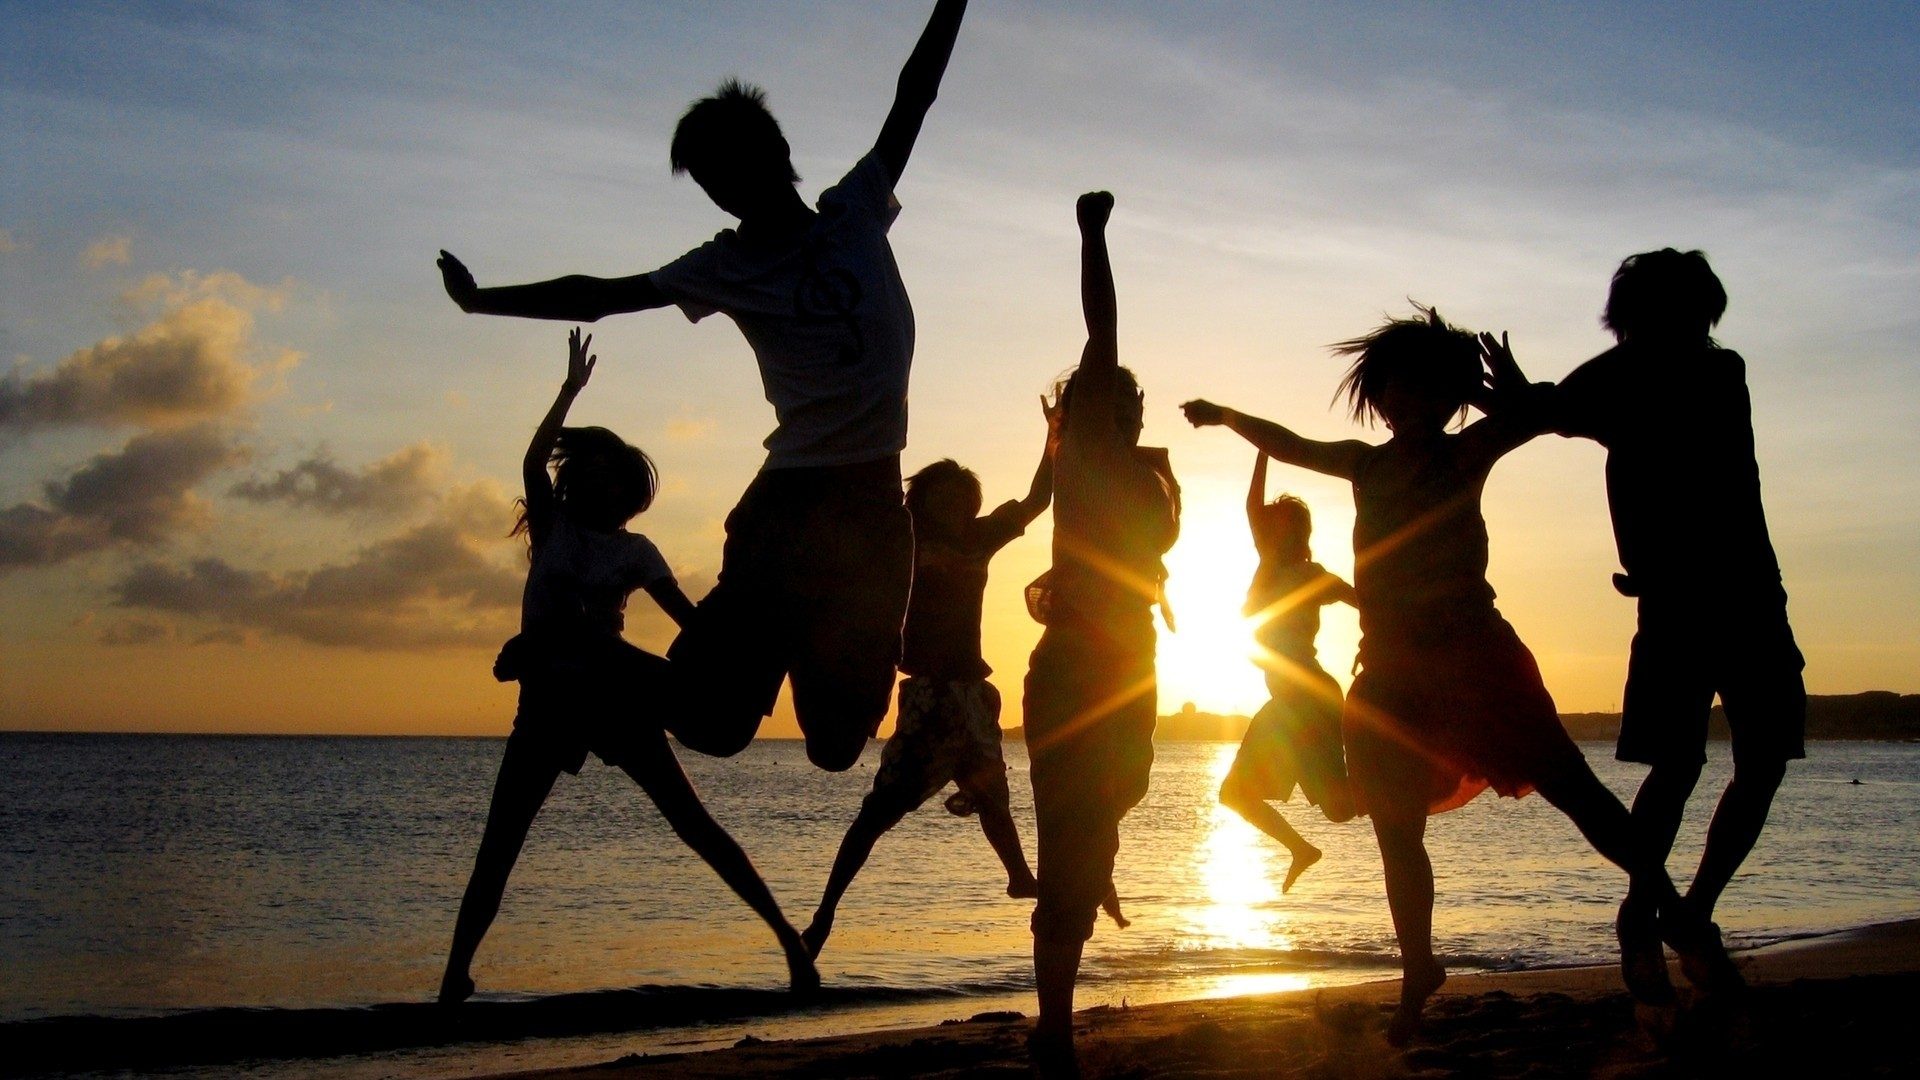 Happy people, friends, happiness, sunset, beach: